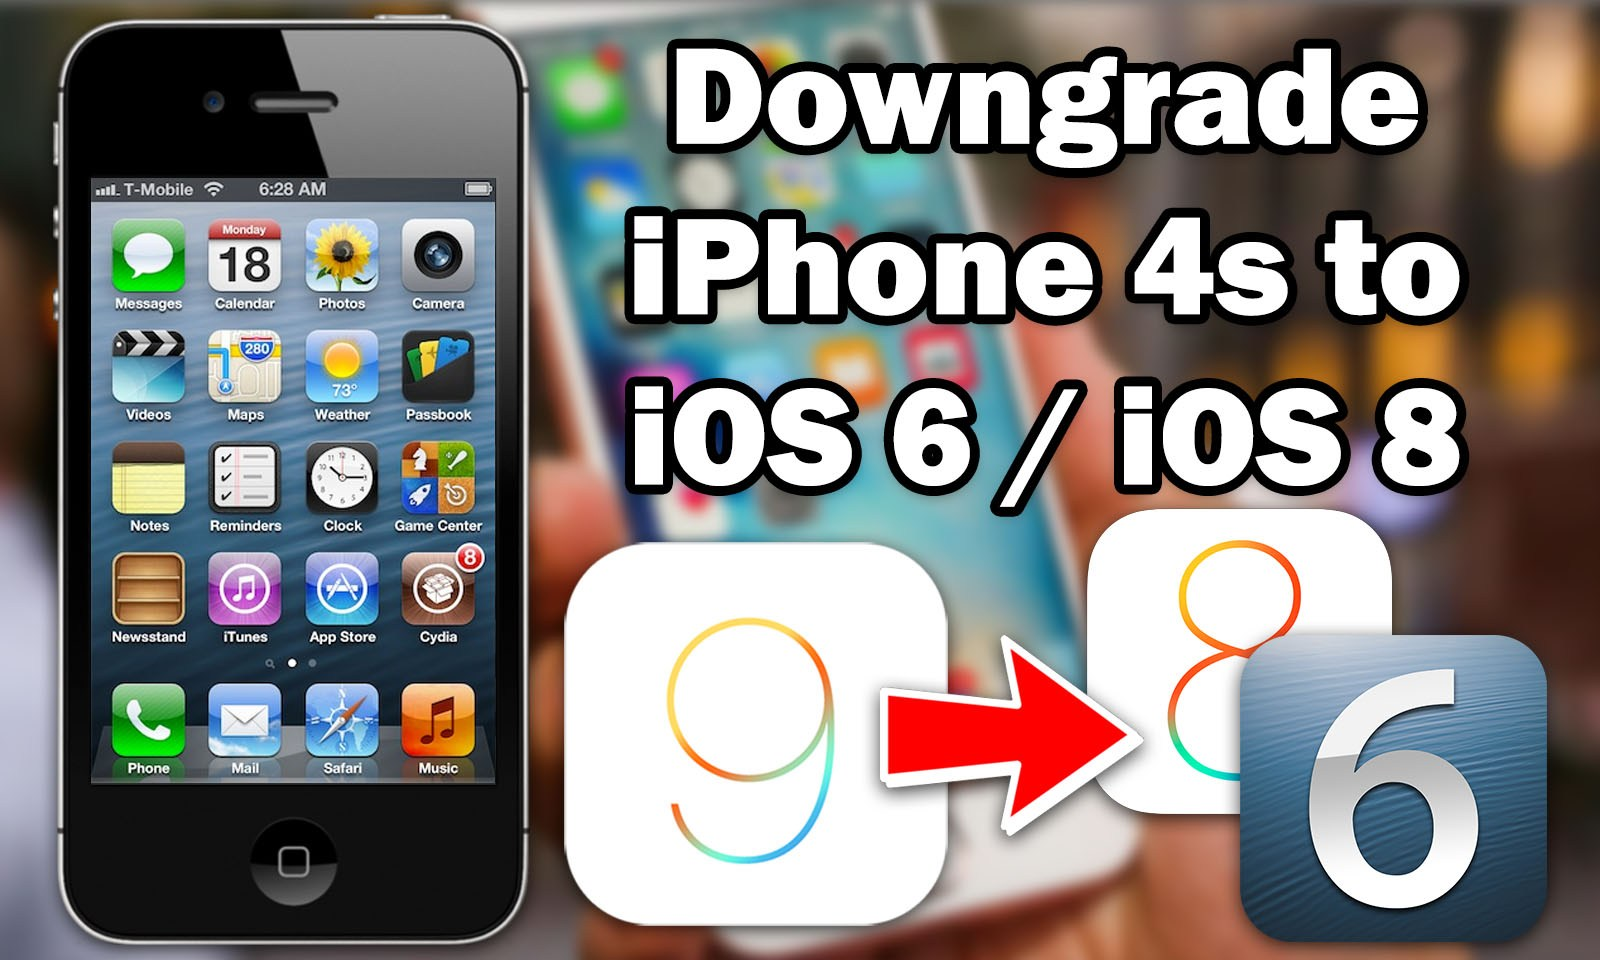 Downgrade iPhone 4s / iPad 2 to iOS 6.1.3 Using 3uTools